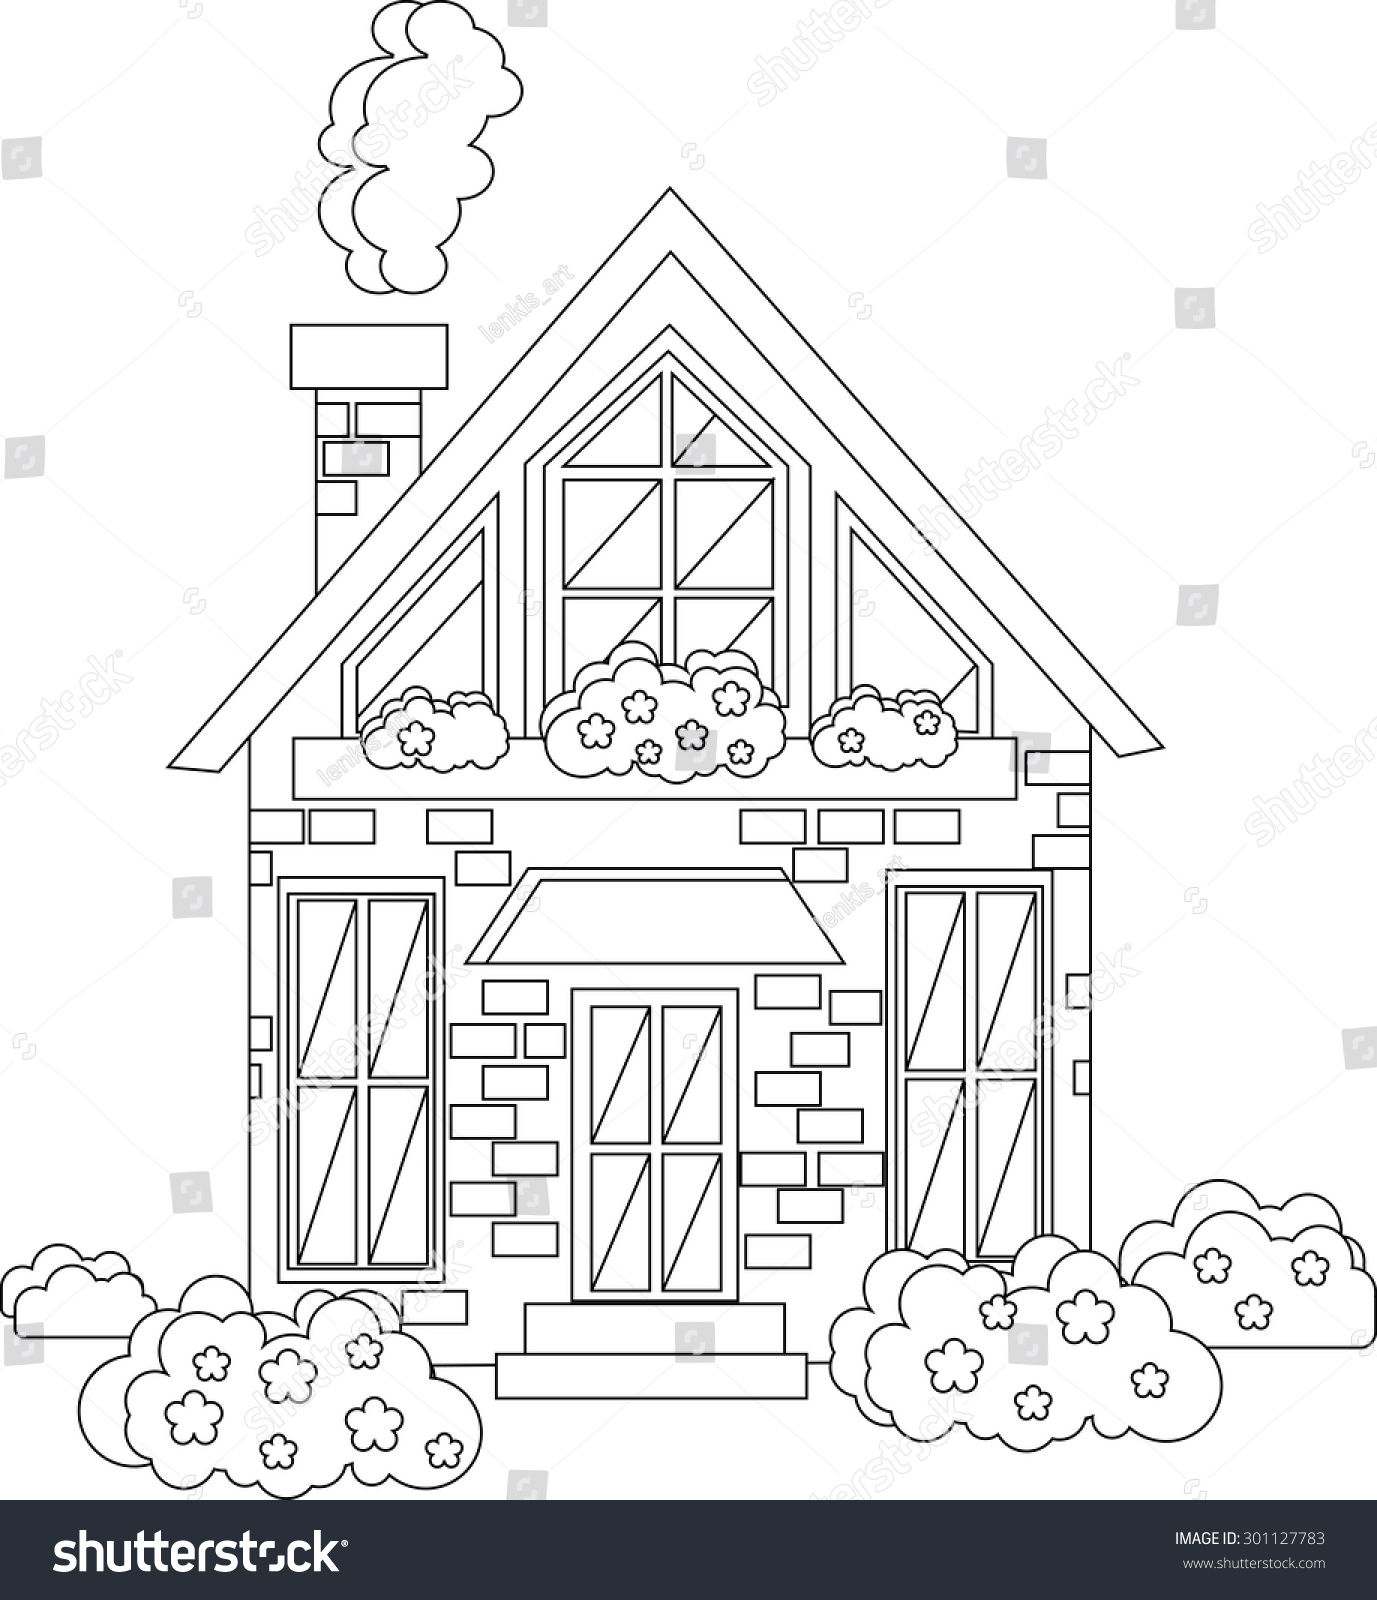 Vector cute outline house illustration for coloring pages monochrome house graphic illustration